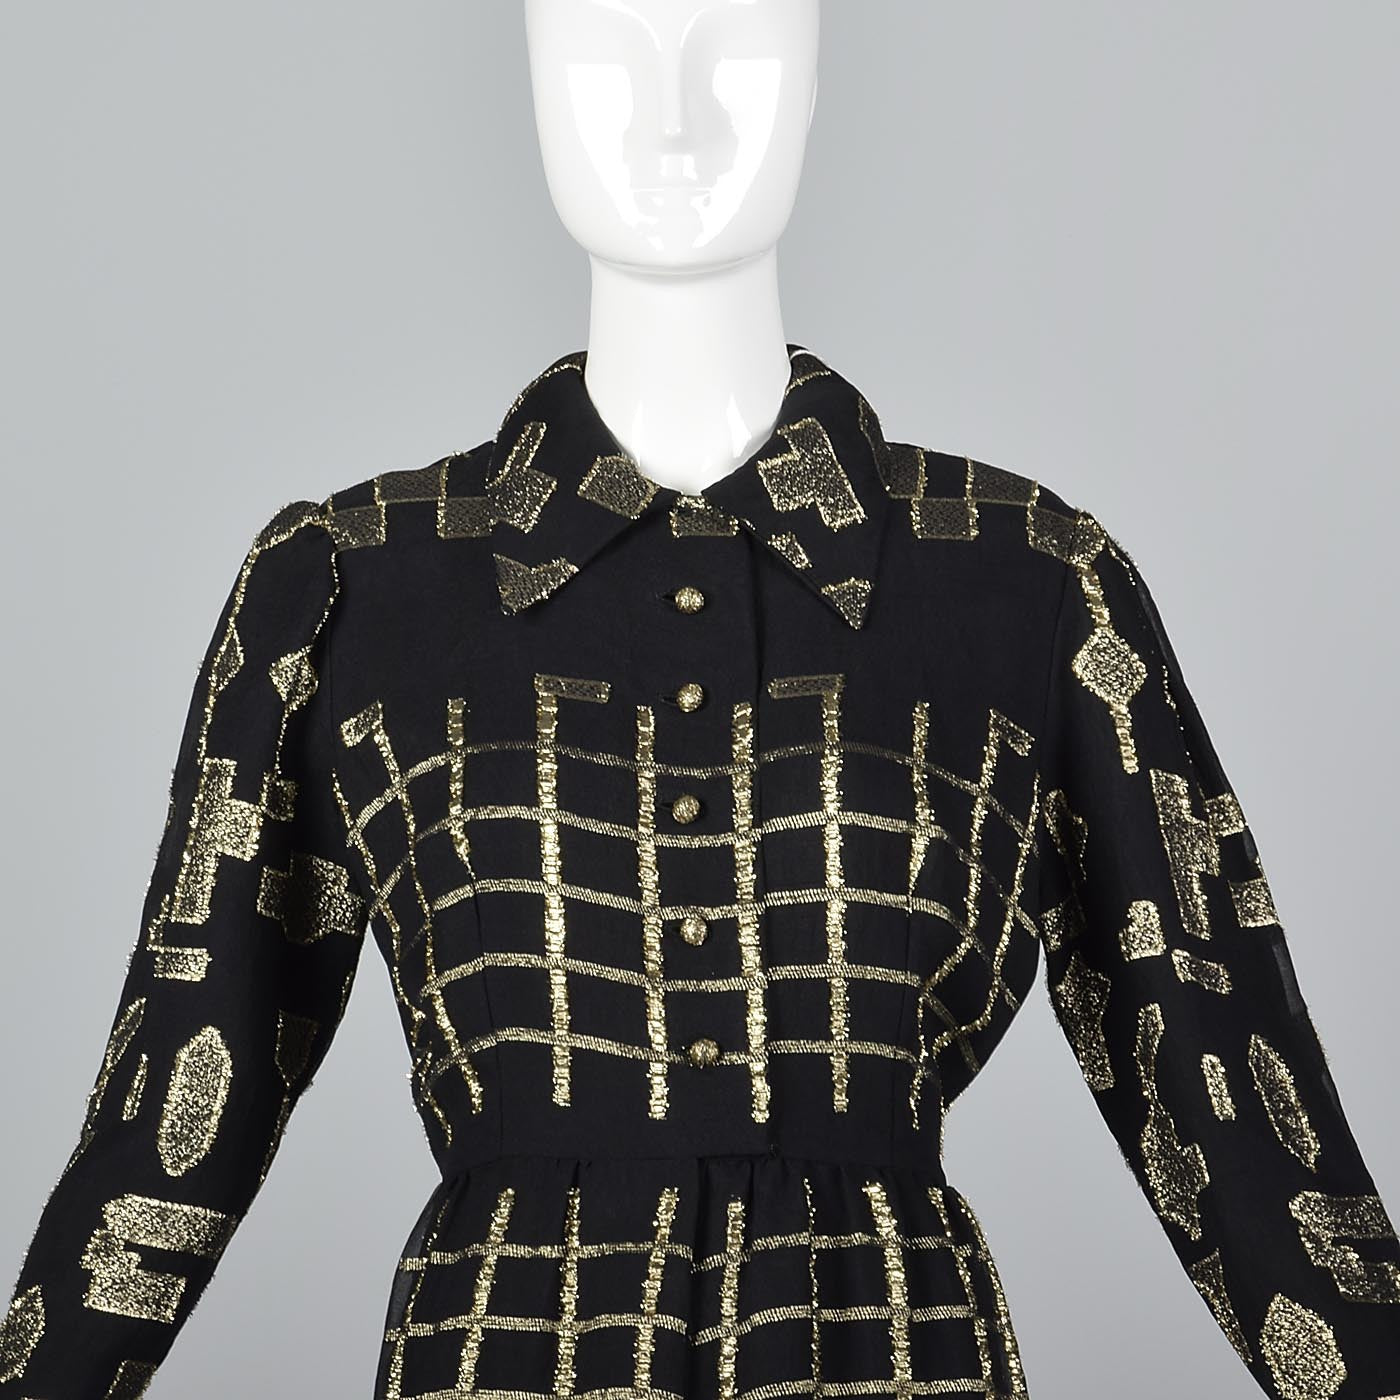 Oscar de la Renta Geometric Black & Gold Silk Dress